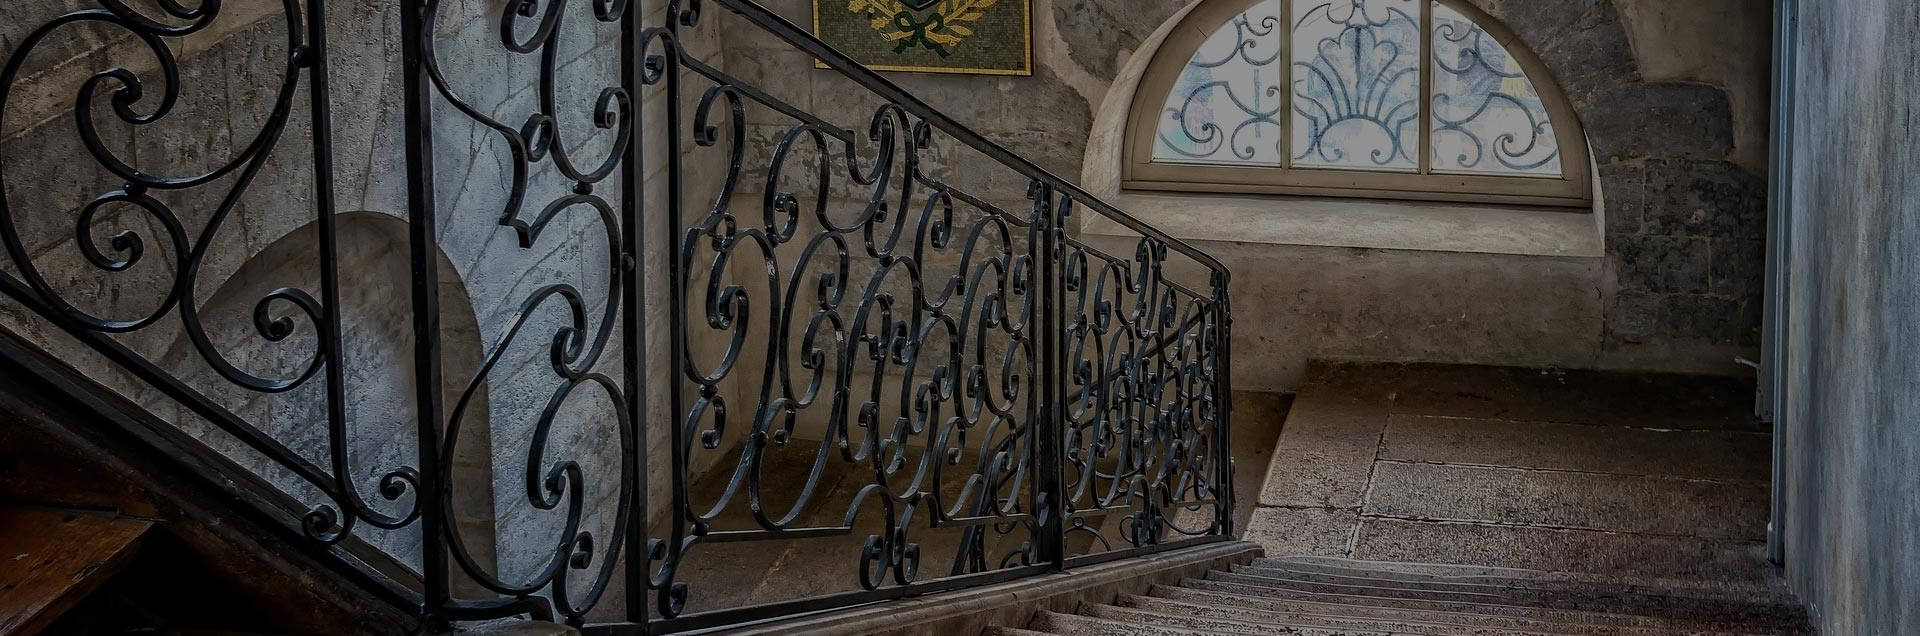 Custom Iron Railings Toronto and Mississauga